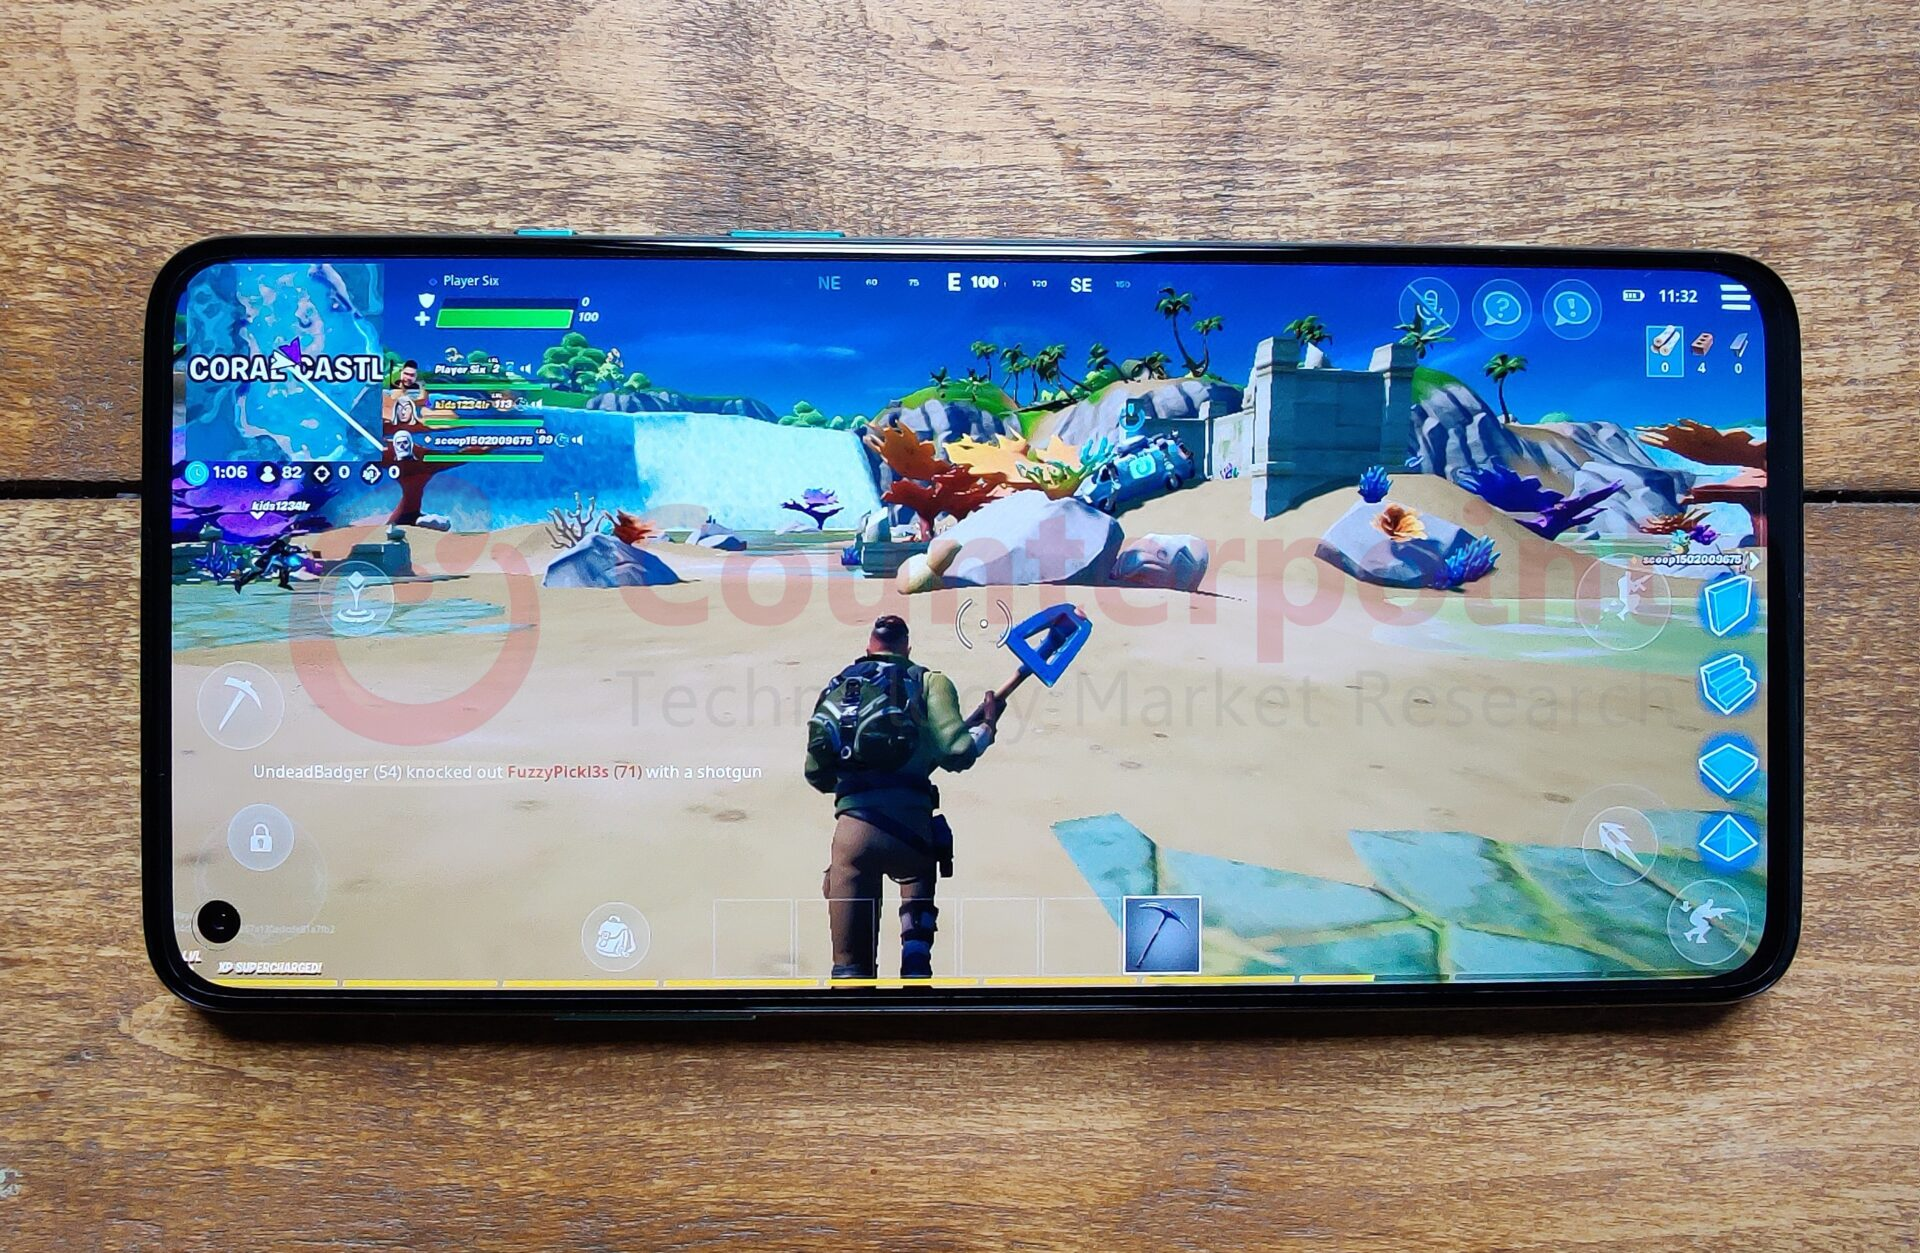 Fortnite on the OnePlus 8T